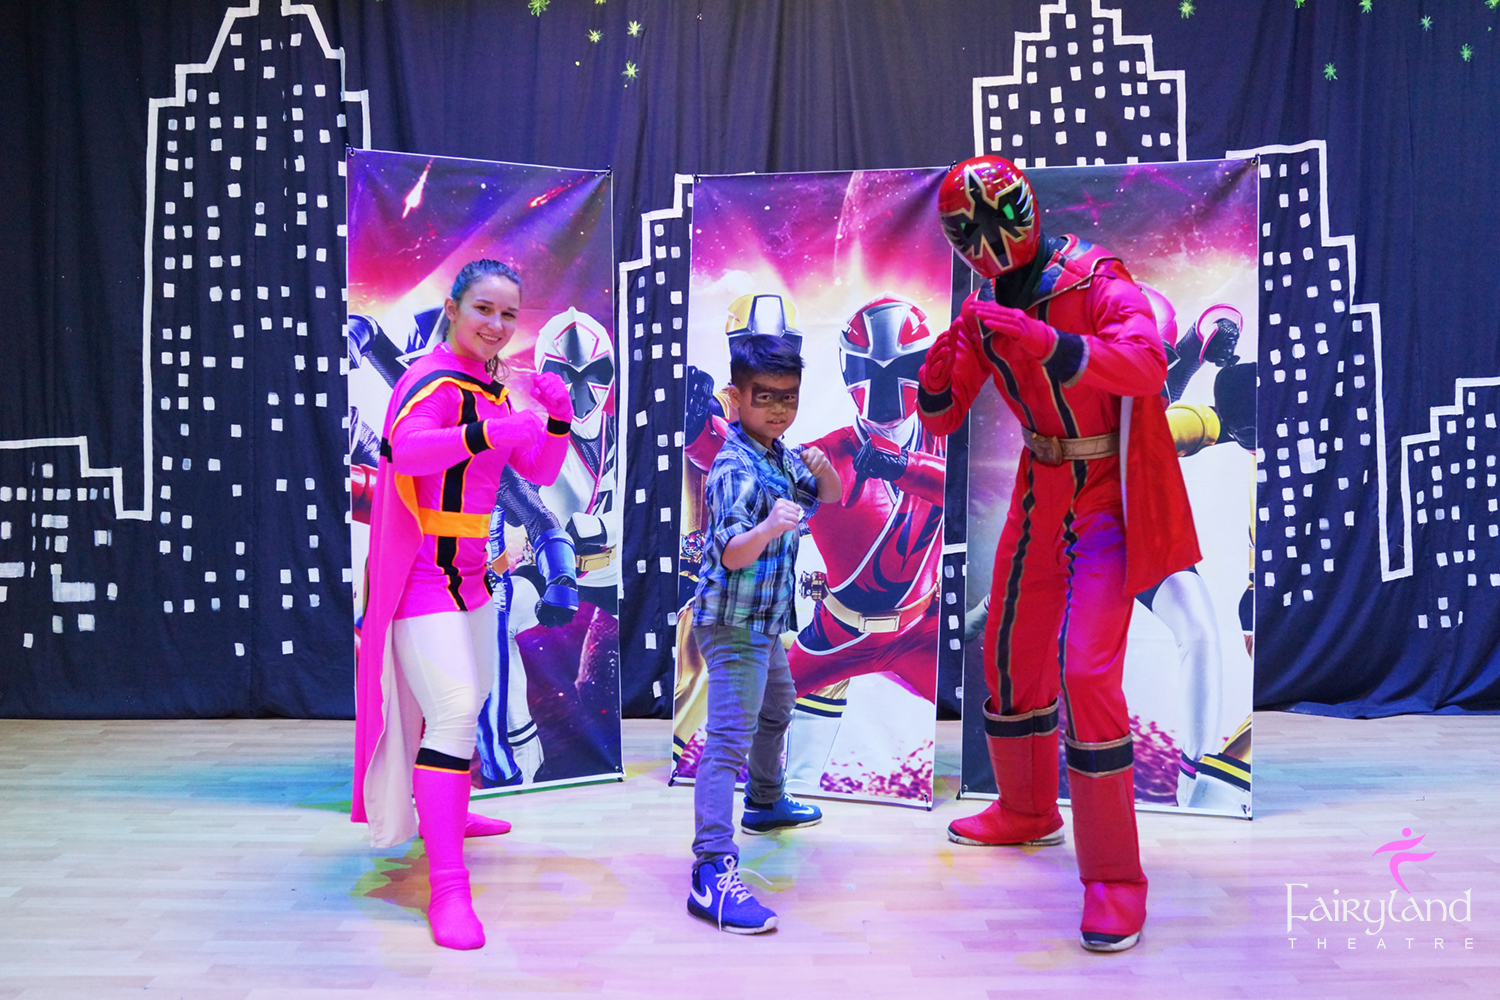 Power Rangers Party Welcome To Fairyland Theatre